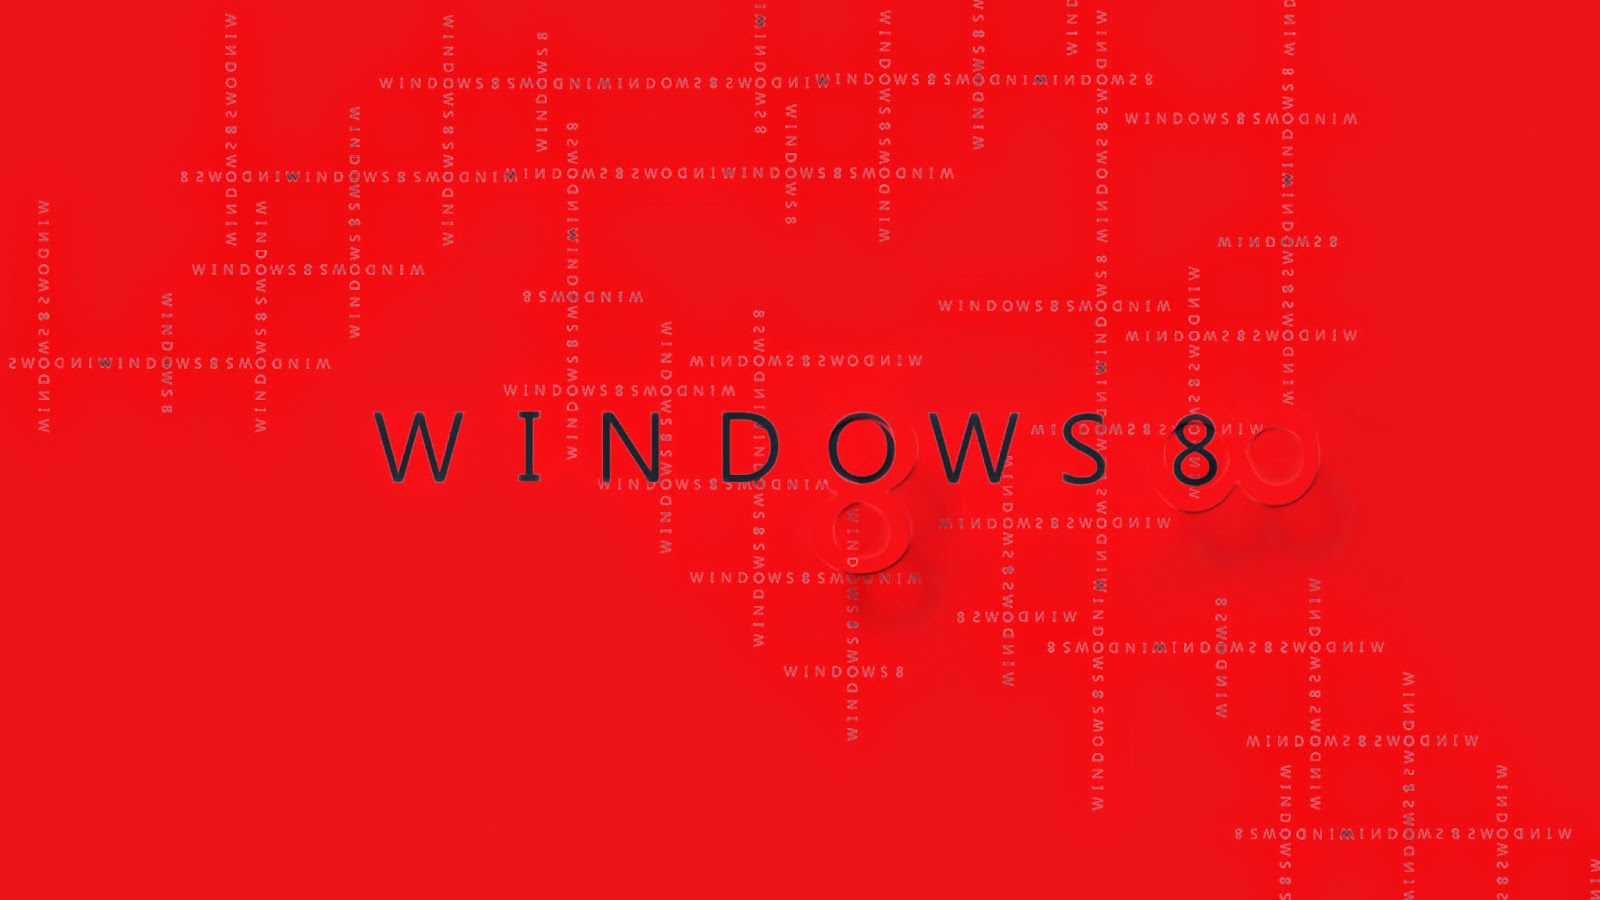 red-theme-windows-8-background-desktop-wallpaper-black-text-images.jpg